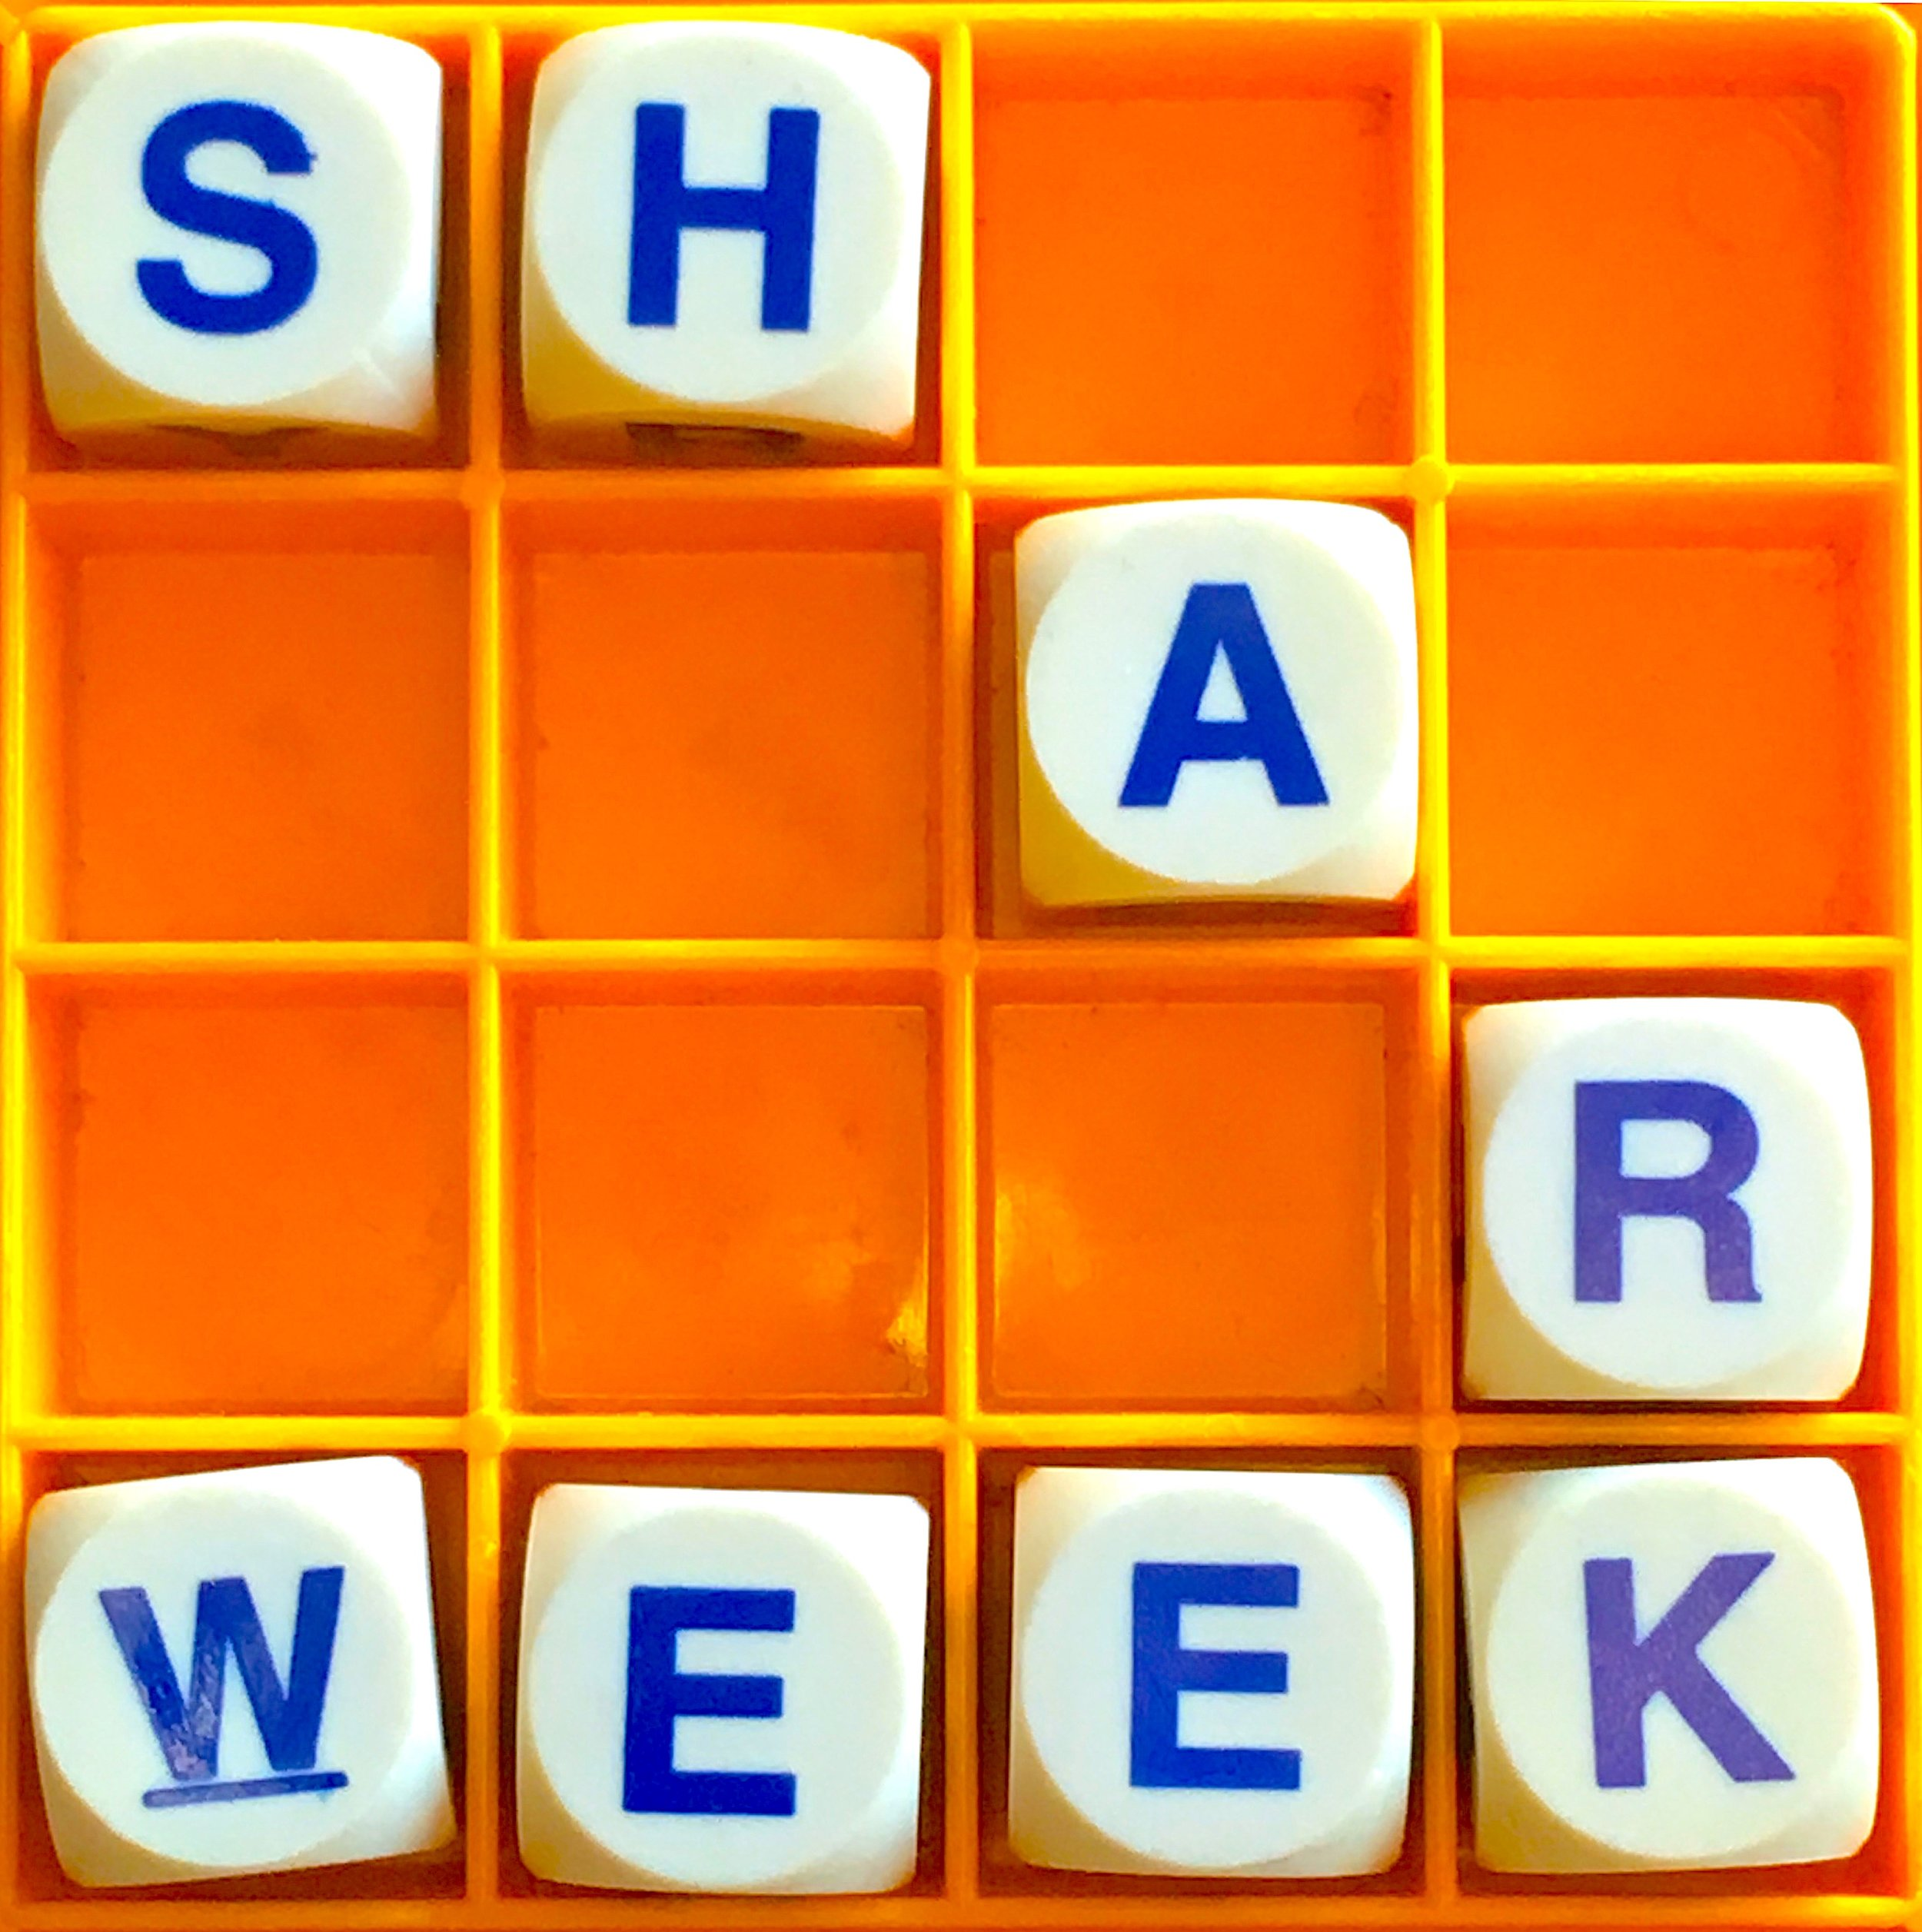 A81 Shark Week logo.jpg